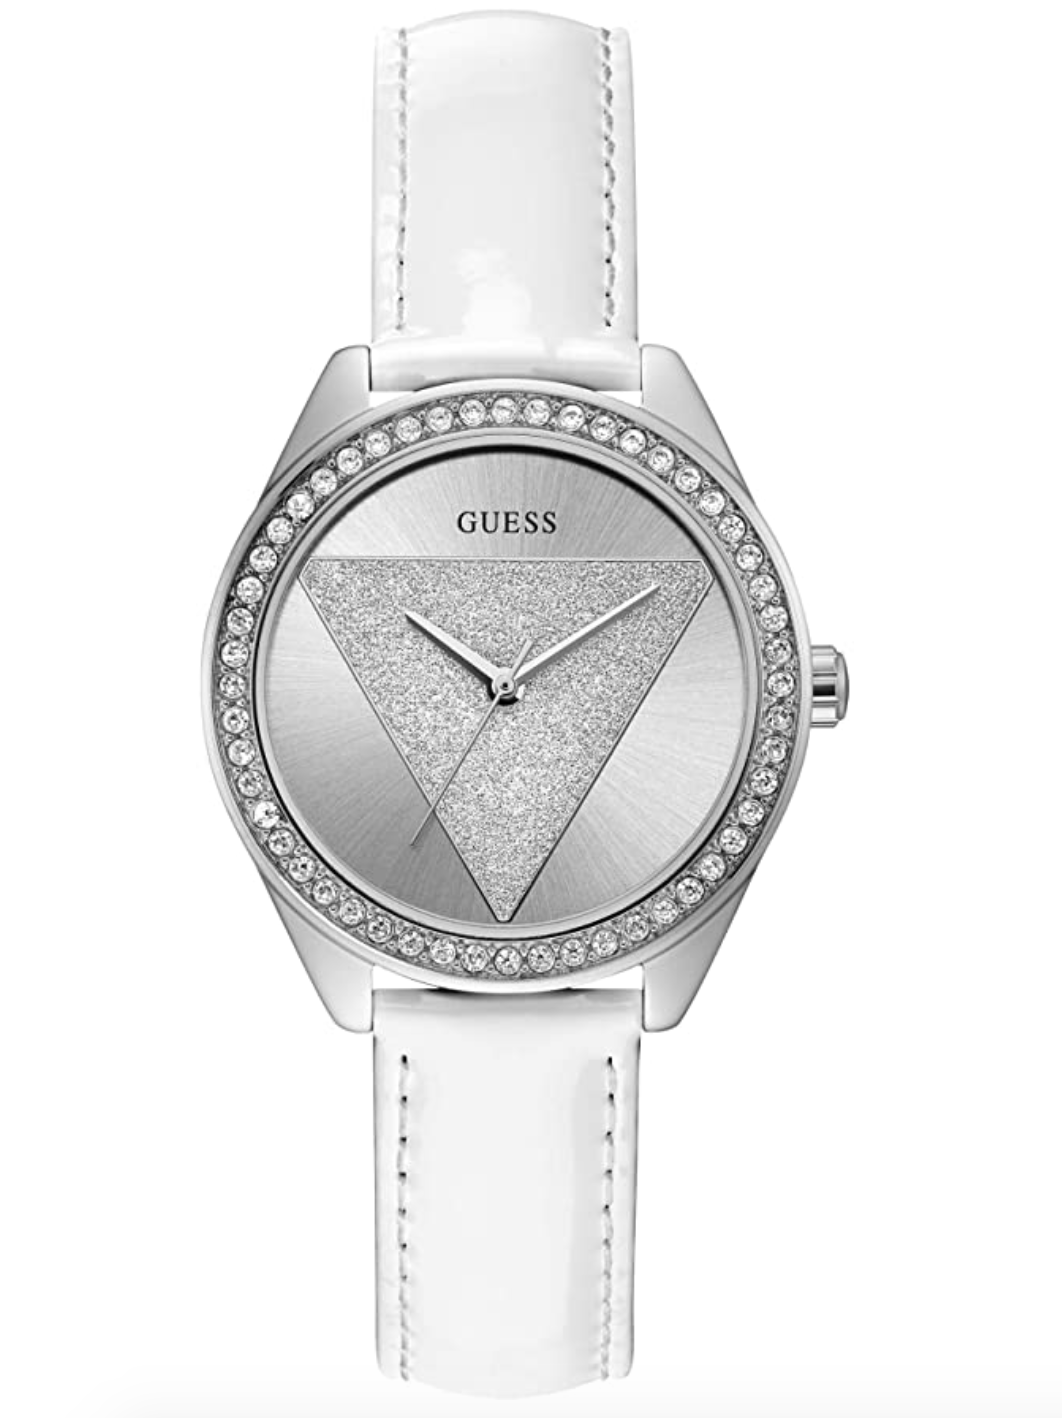 Guess Women Analogue Quartz Watch With Leather Strap W0884l2